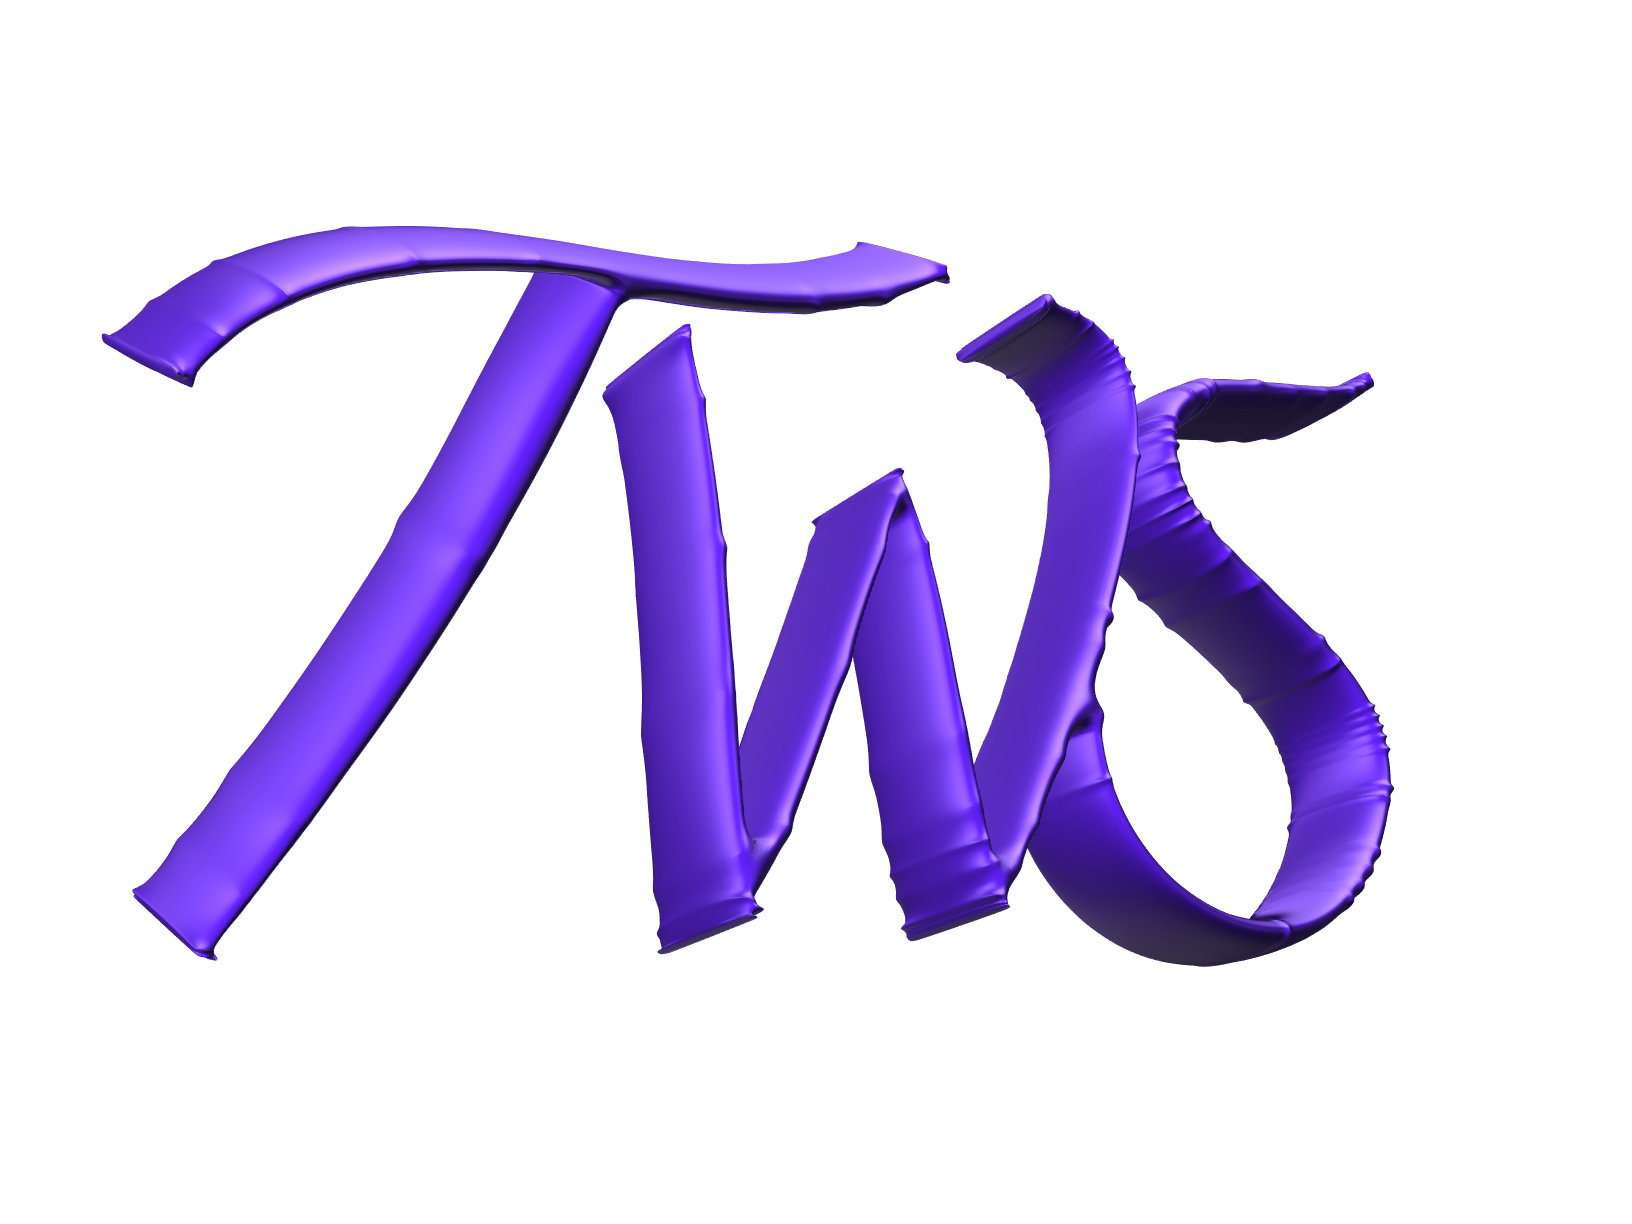 TWS - 3D design by Karriem Muhammad Dec 28, 2017